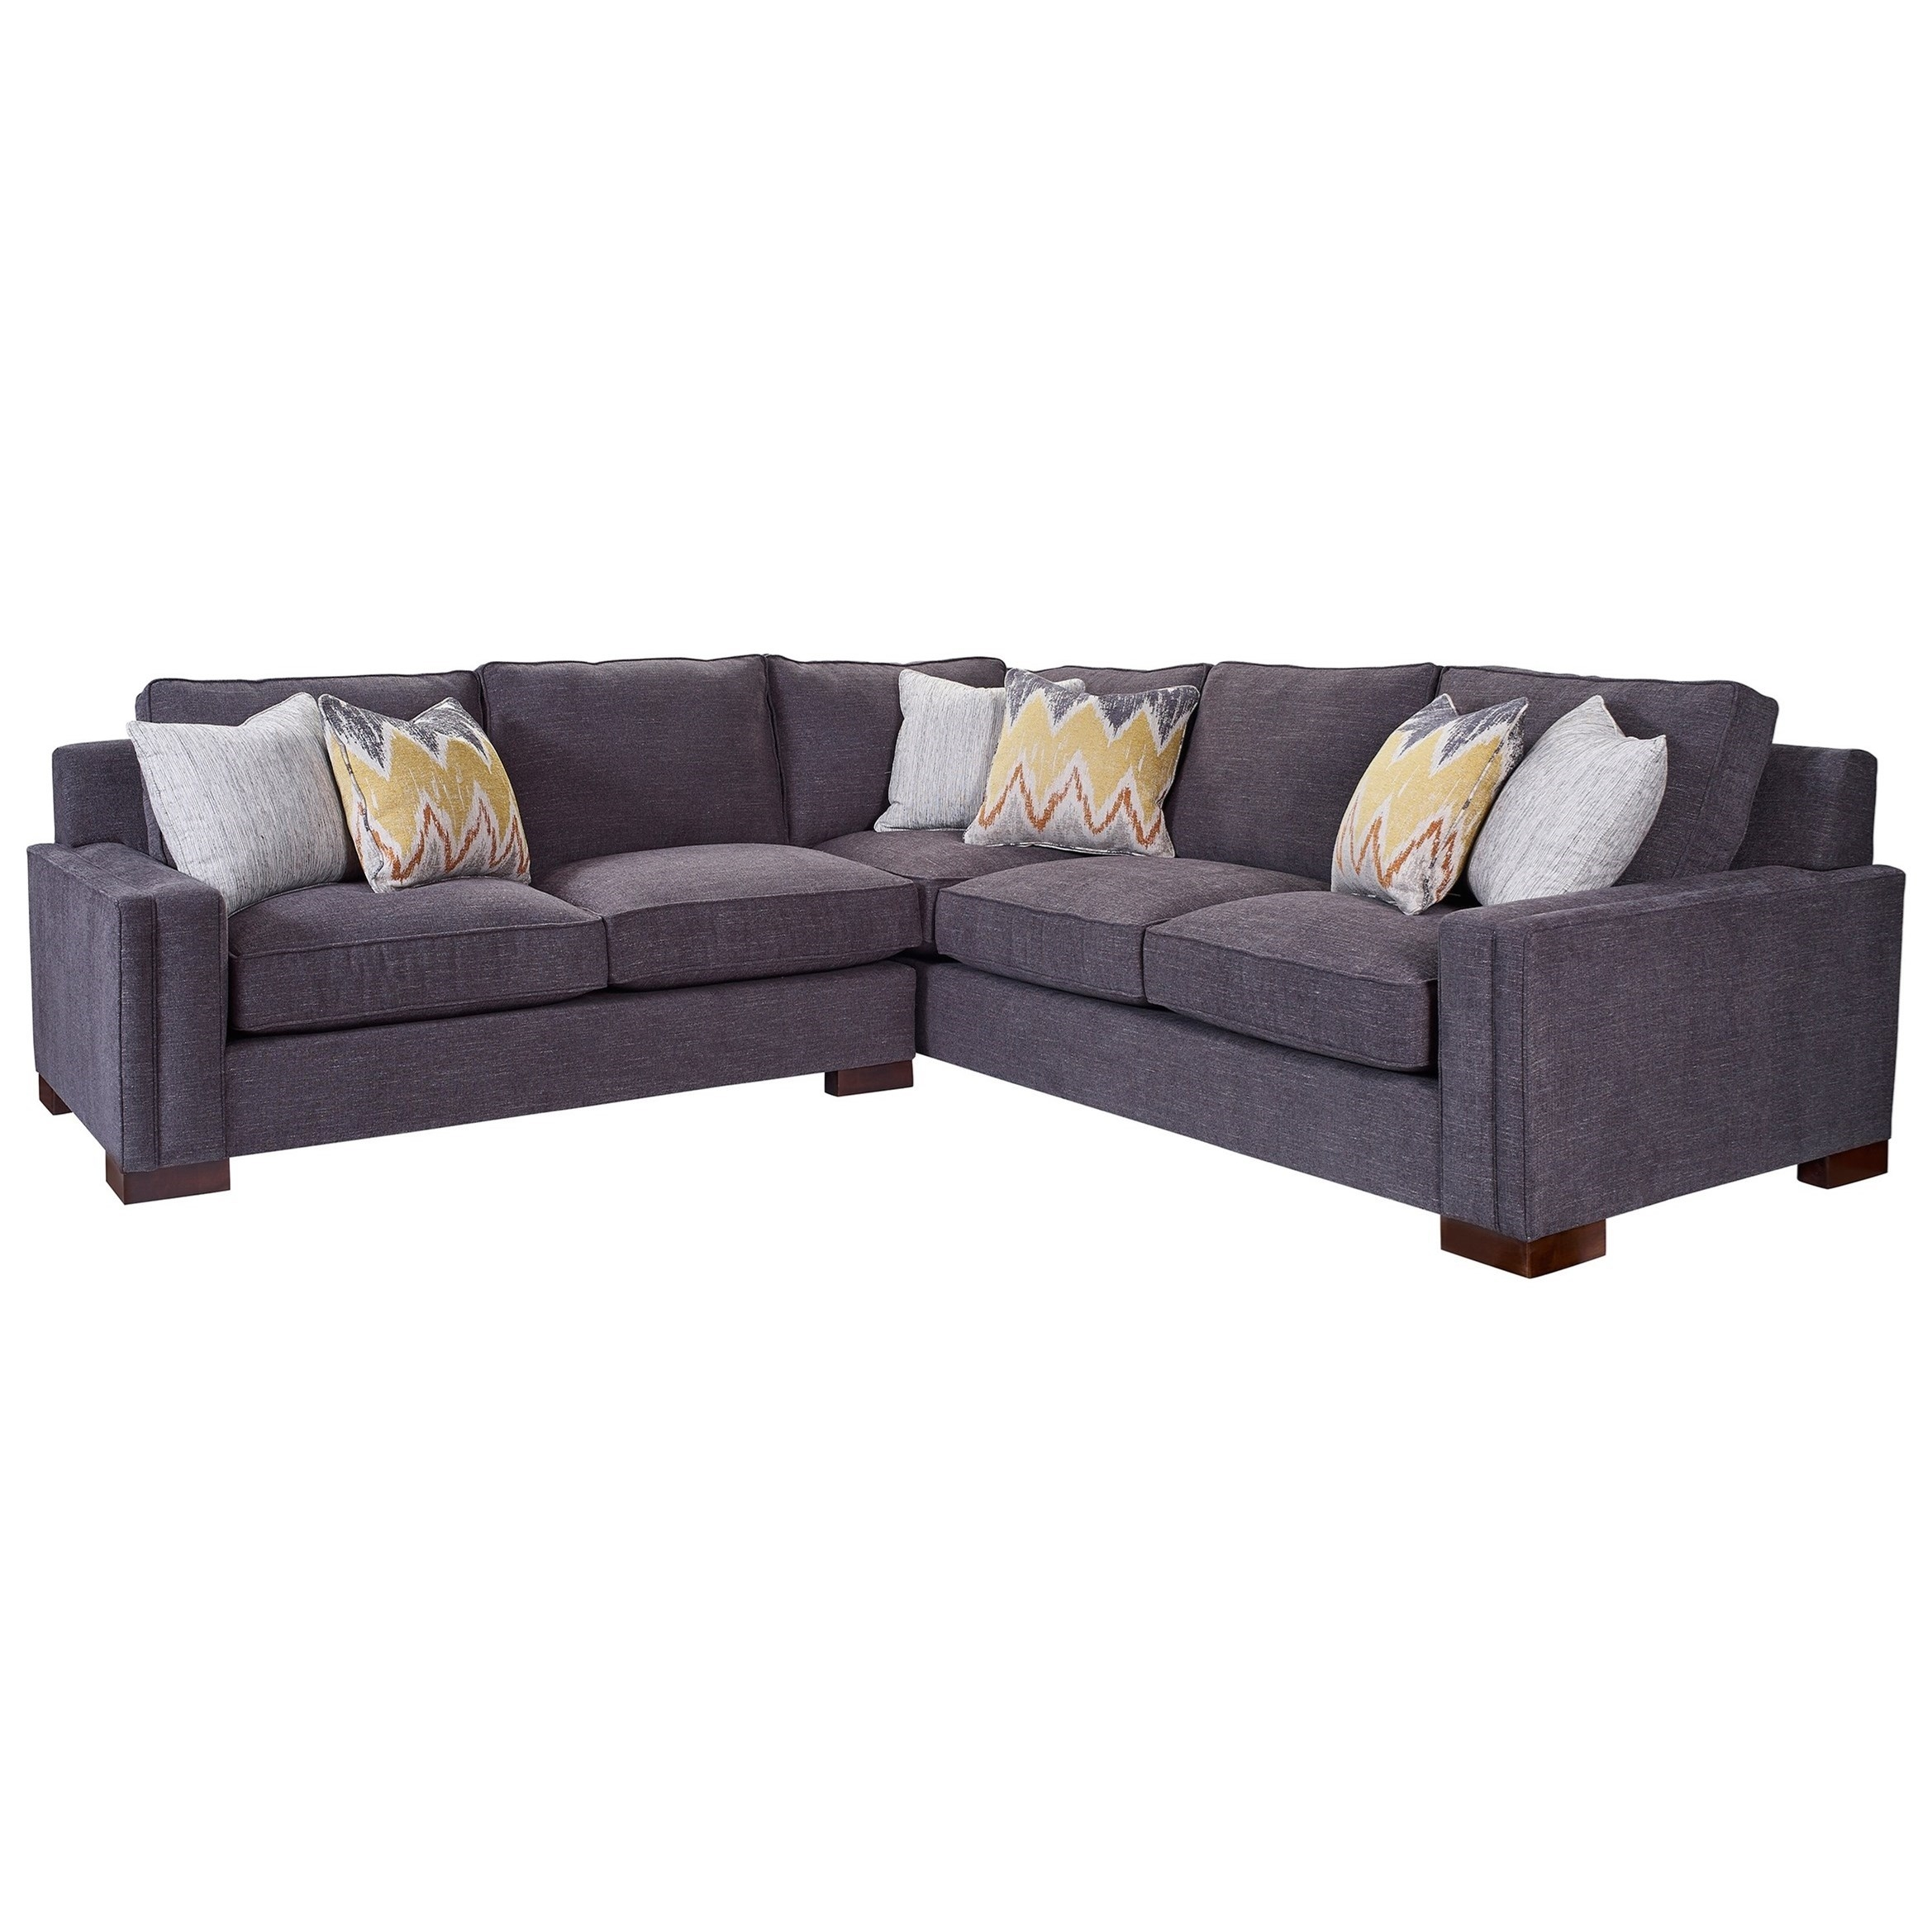 Broyhill Furniture Rocco 2 Piece Sectional With Corner Sofa Within Broyhill Sectional Sofas (Image 6 of 15)